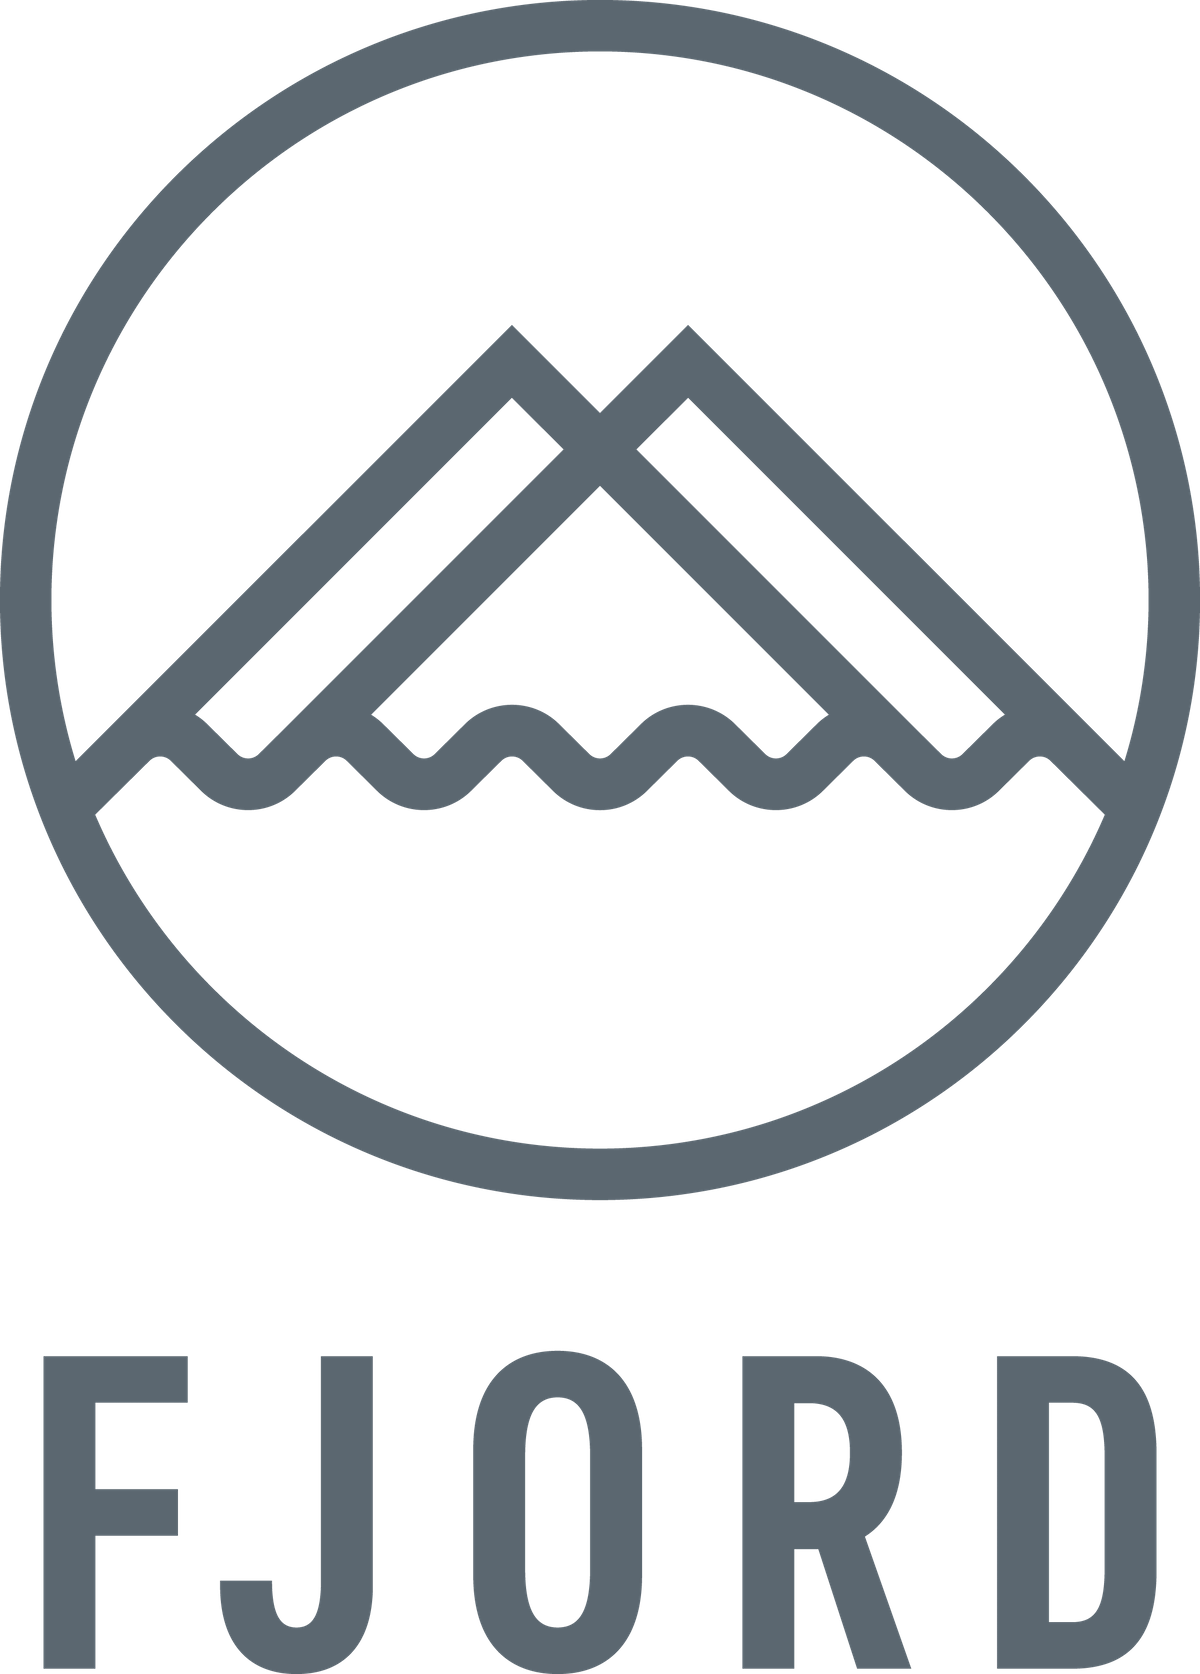 The Fjord Store